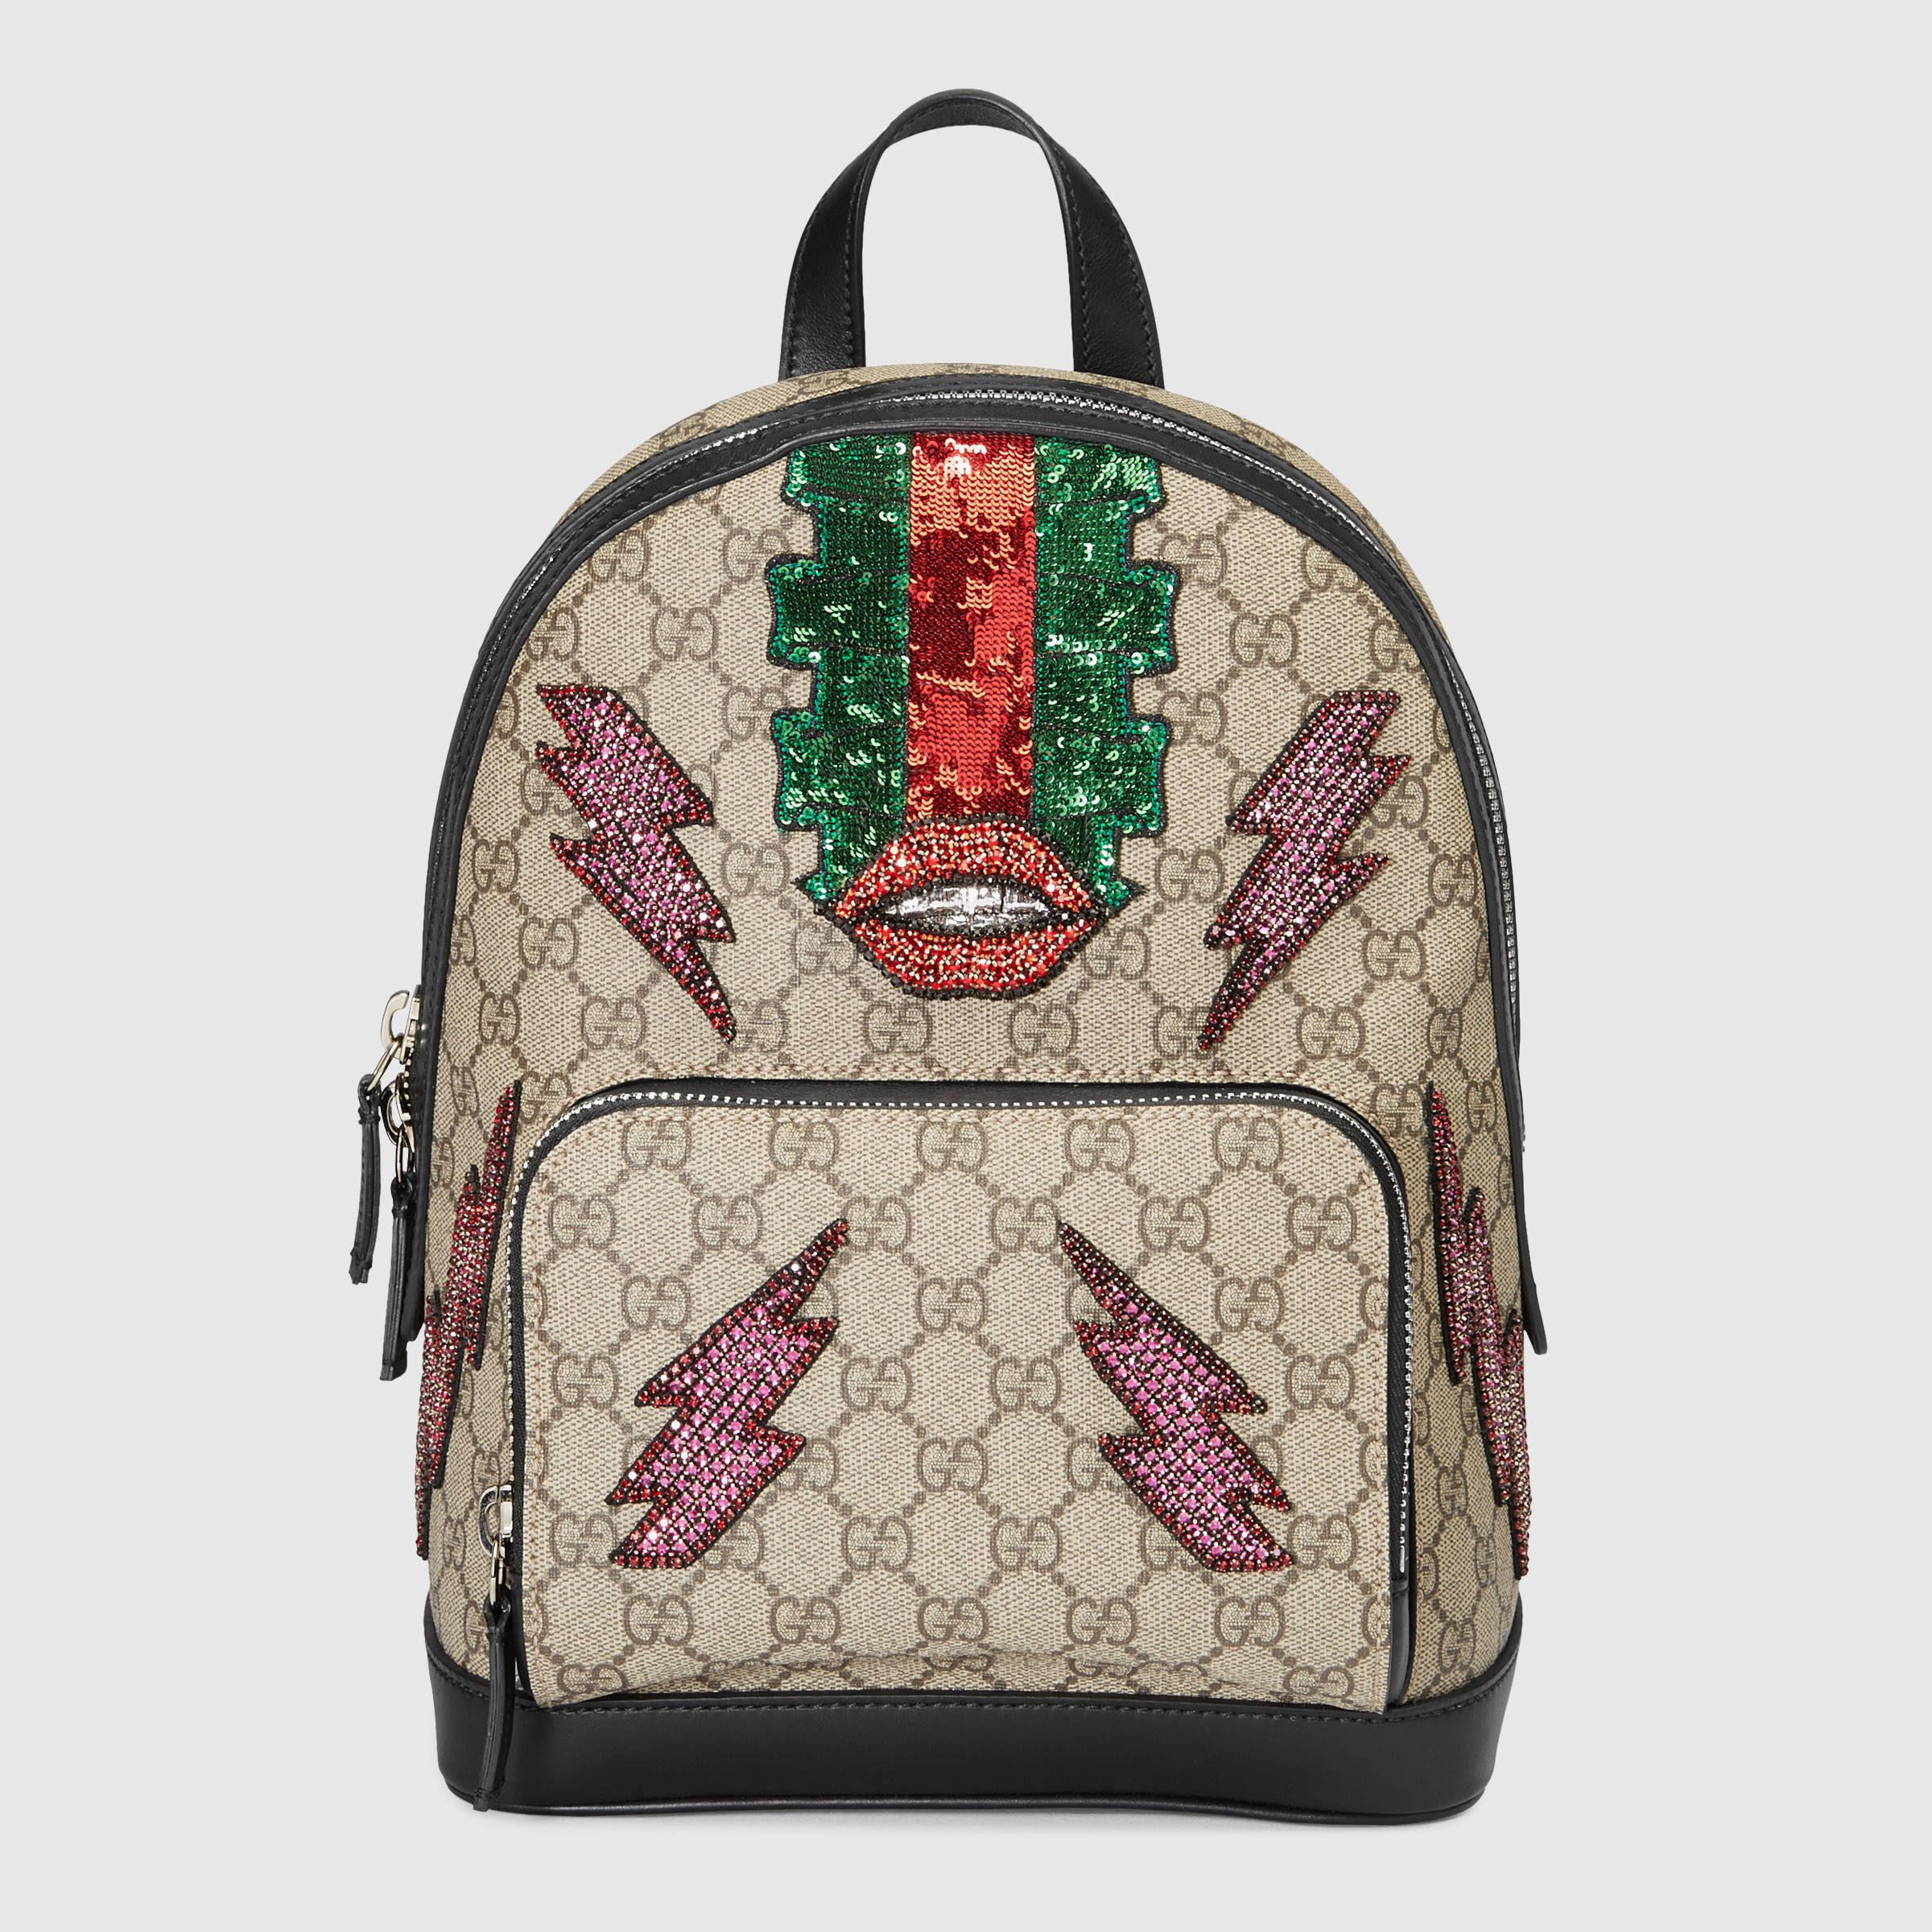 4d2e08c6e0 Gucci Women - Beaded Sky GG Supreme backpack - 430151K05AN8644 ...